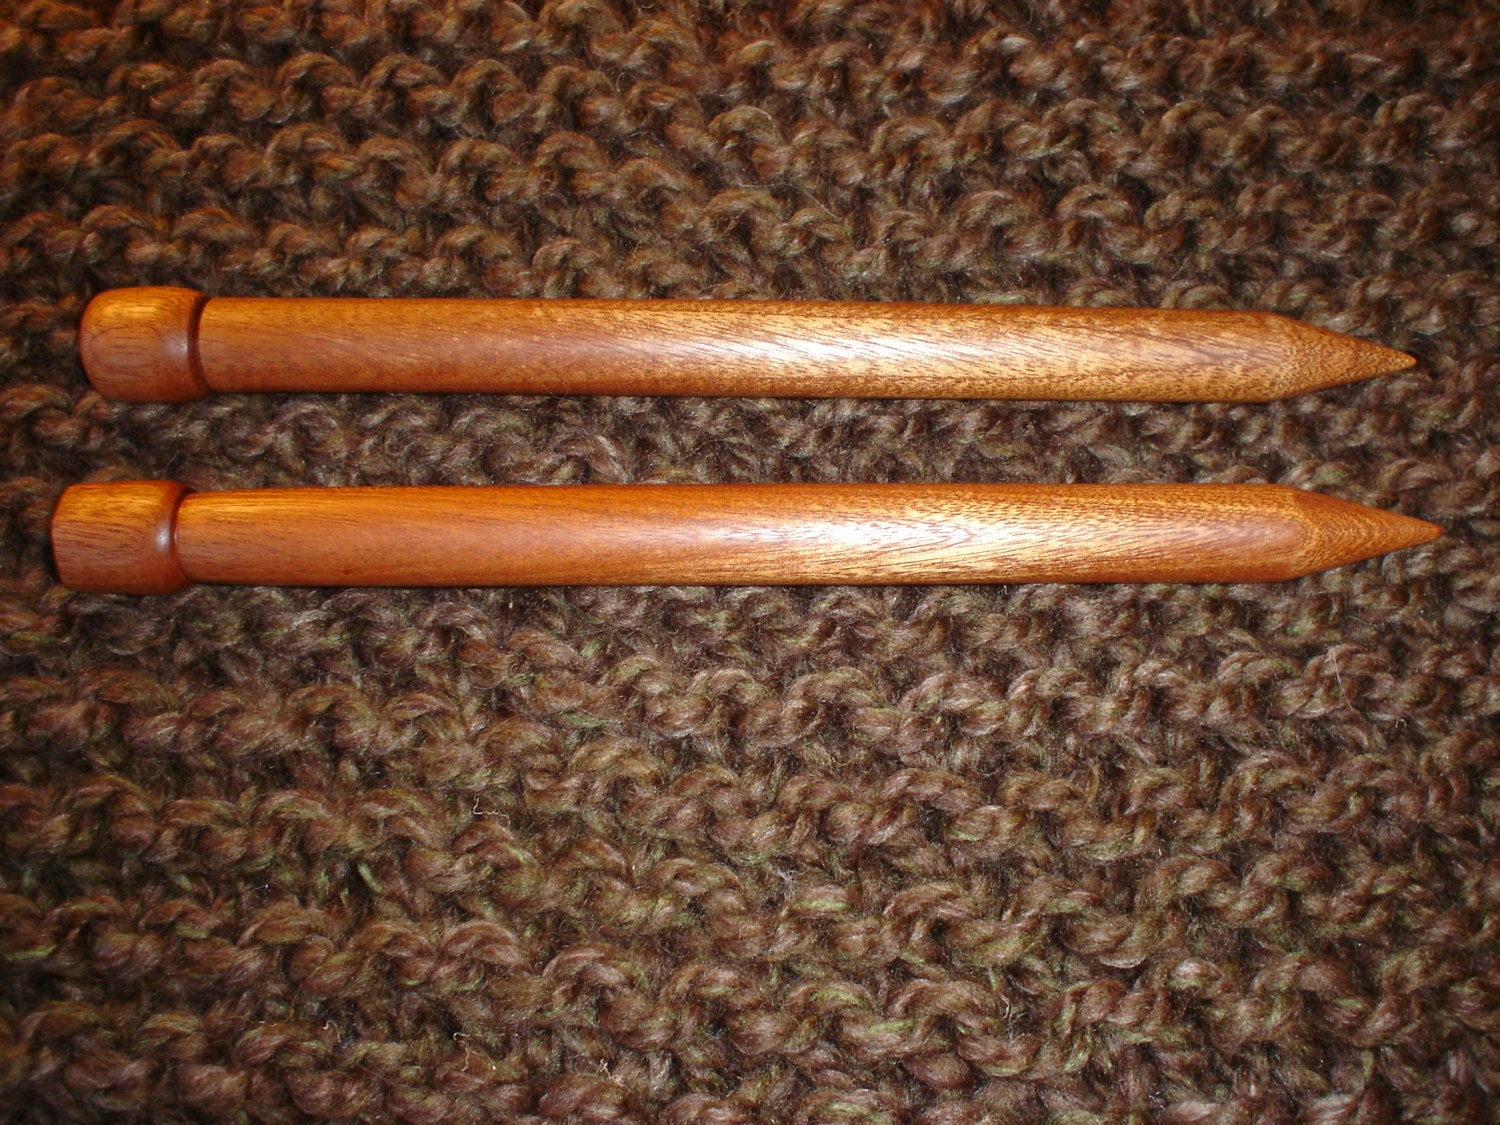 Wooden Knitting Needles : Handmade Wood Knitting Needles Size 35 20mm by CottageLooms